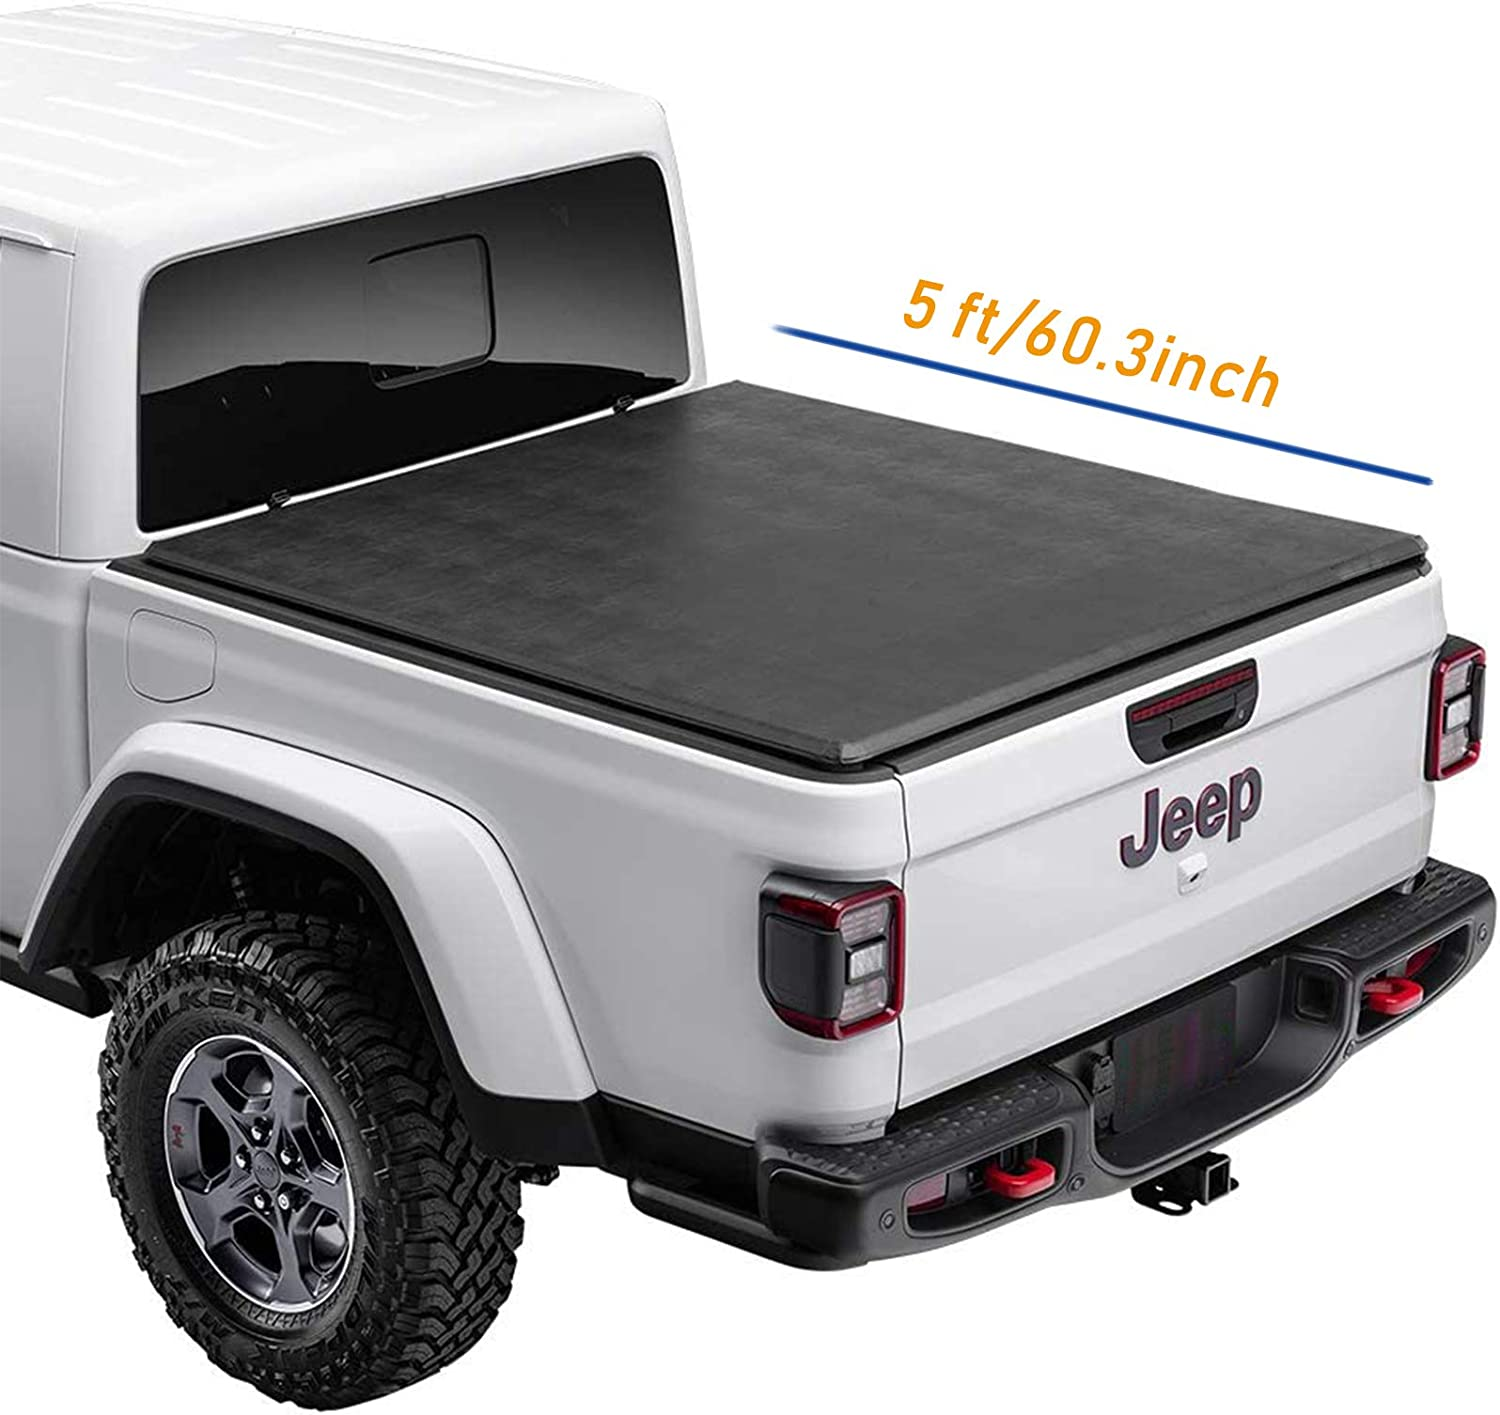 Lyon 5'/60.3 Soft Roll Up Truck Bed Cover for Fits 2020-2021 Jeep Gladiator